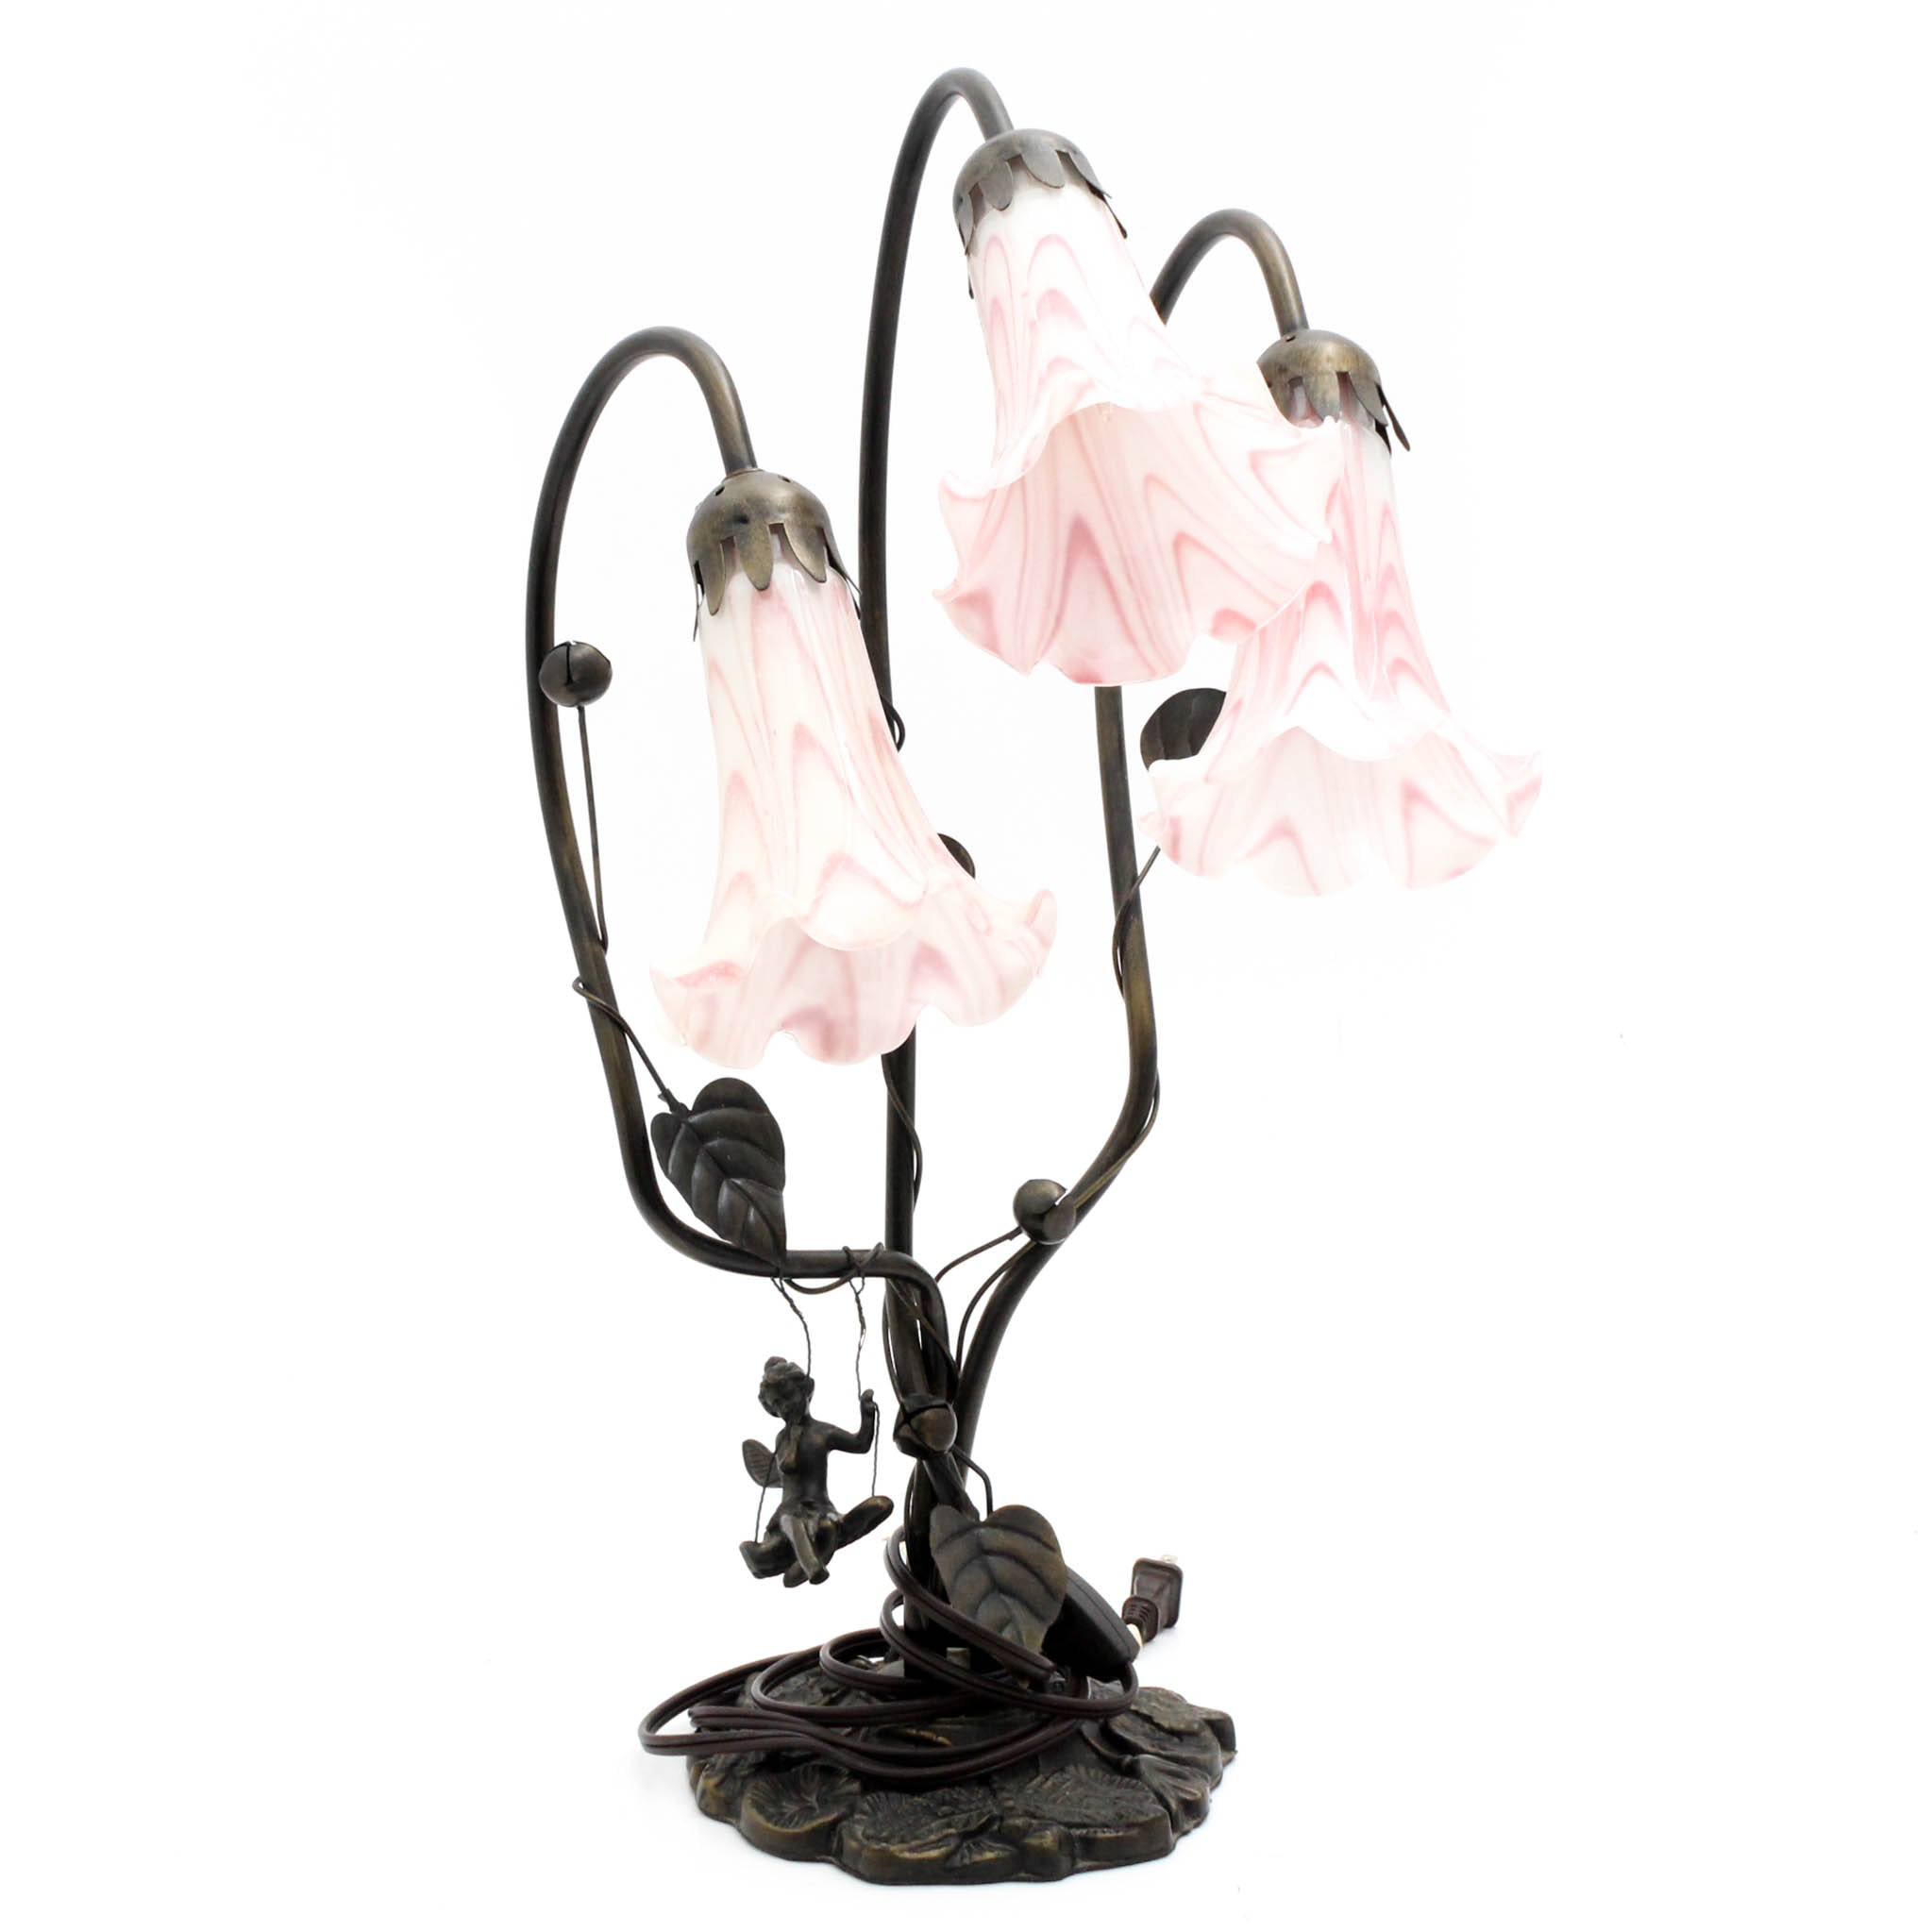 Art Nouveau Style Metal Desk Lamp with Tulip Glass Shades